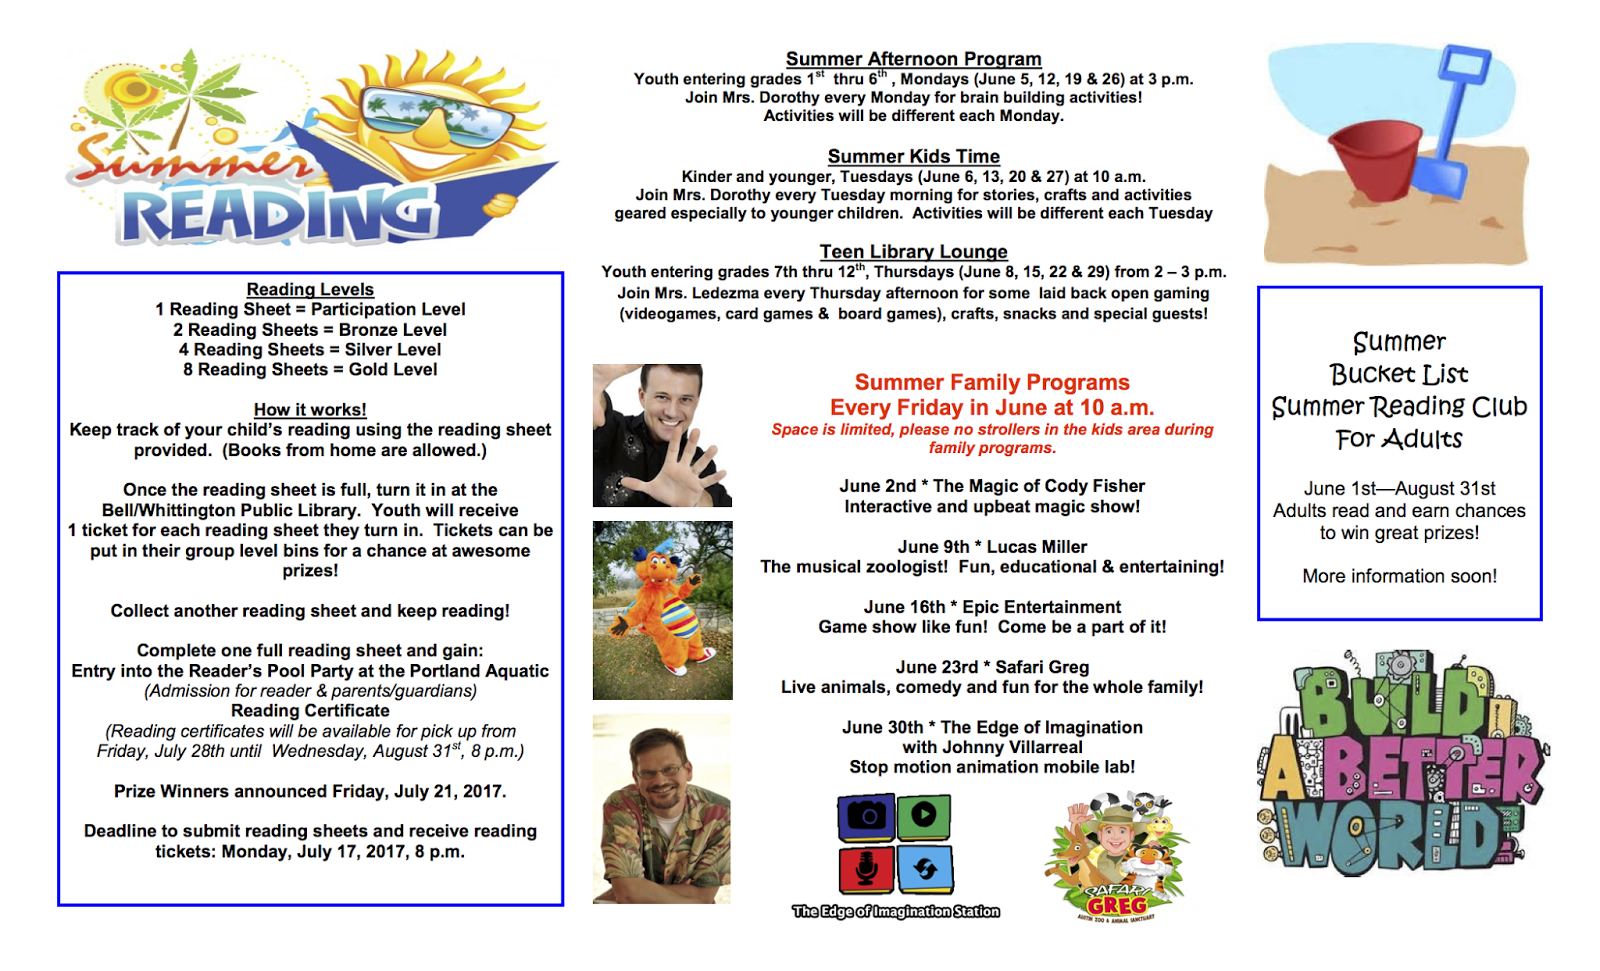 Corpus Christi Fun for Kids Area Summer Reading Programs Guide ...